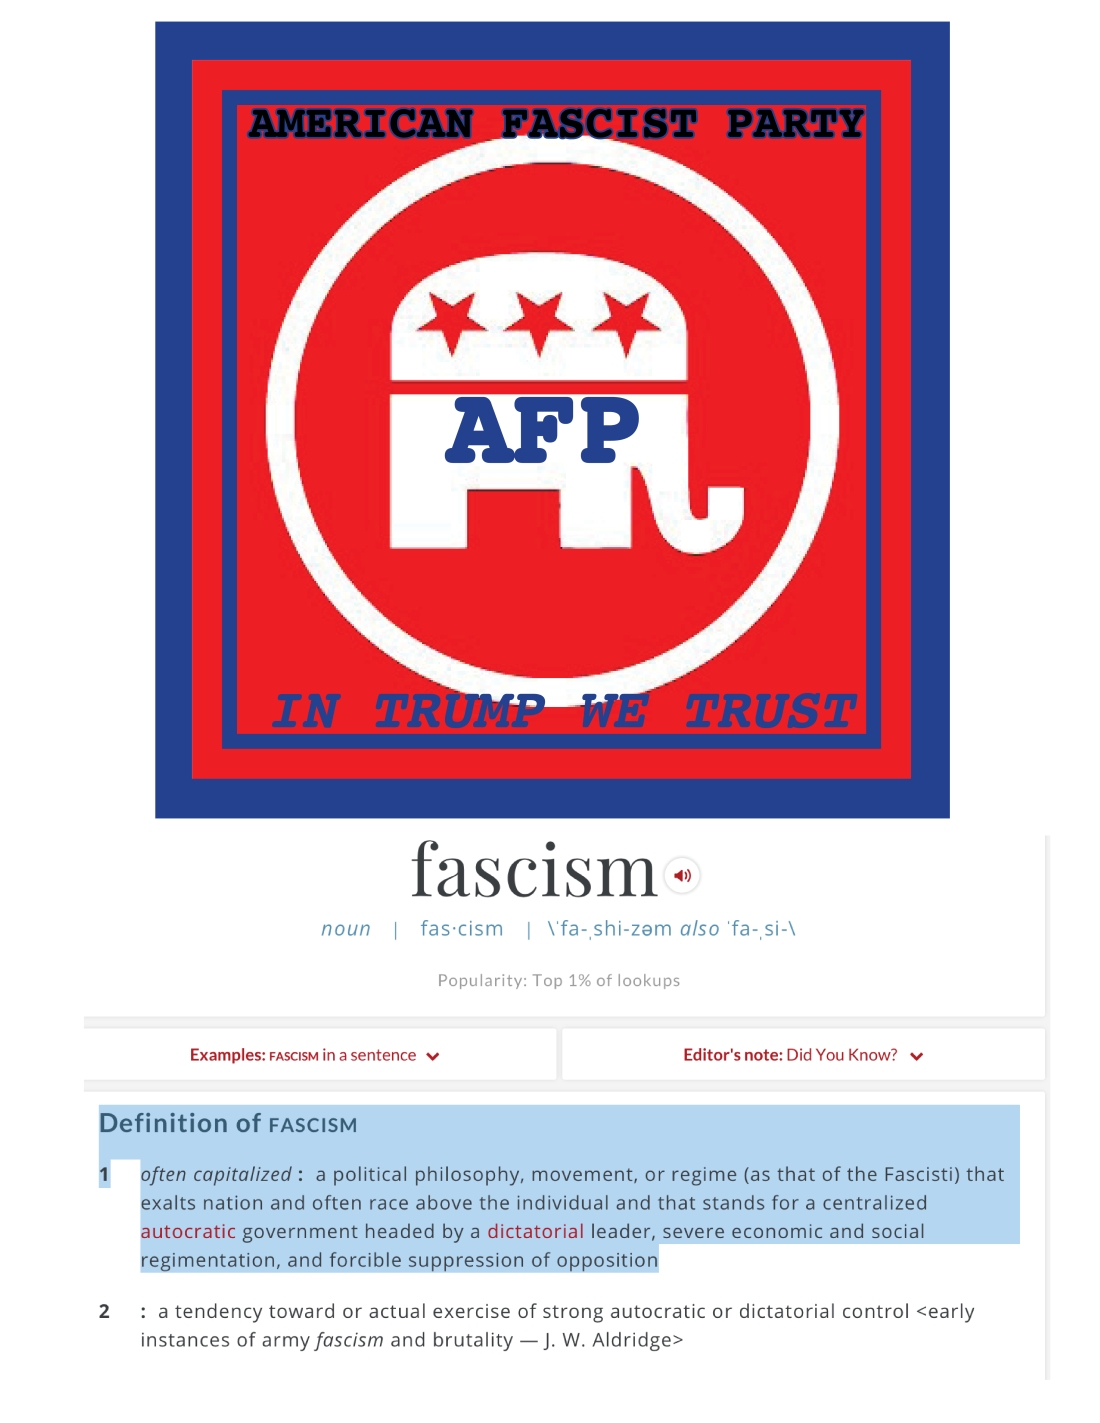 GOP now AFP flyer.jpg